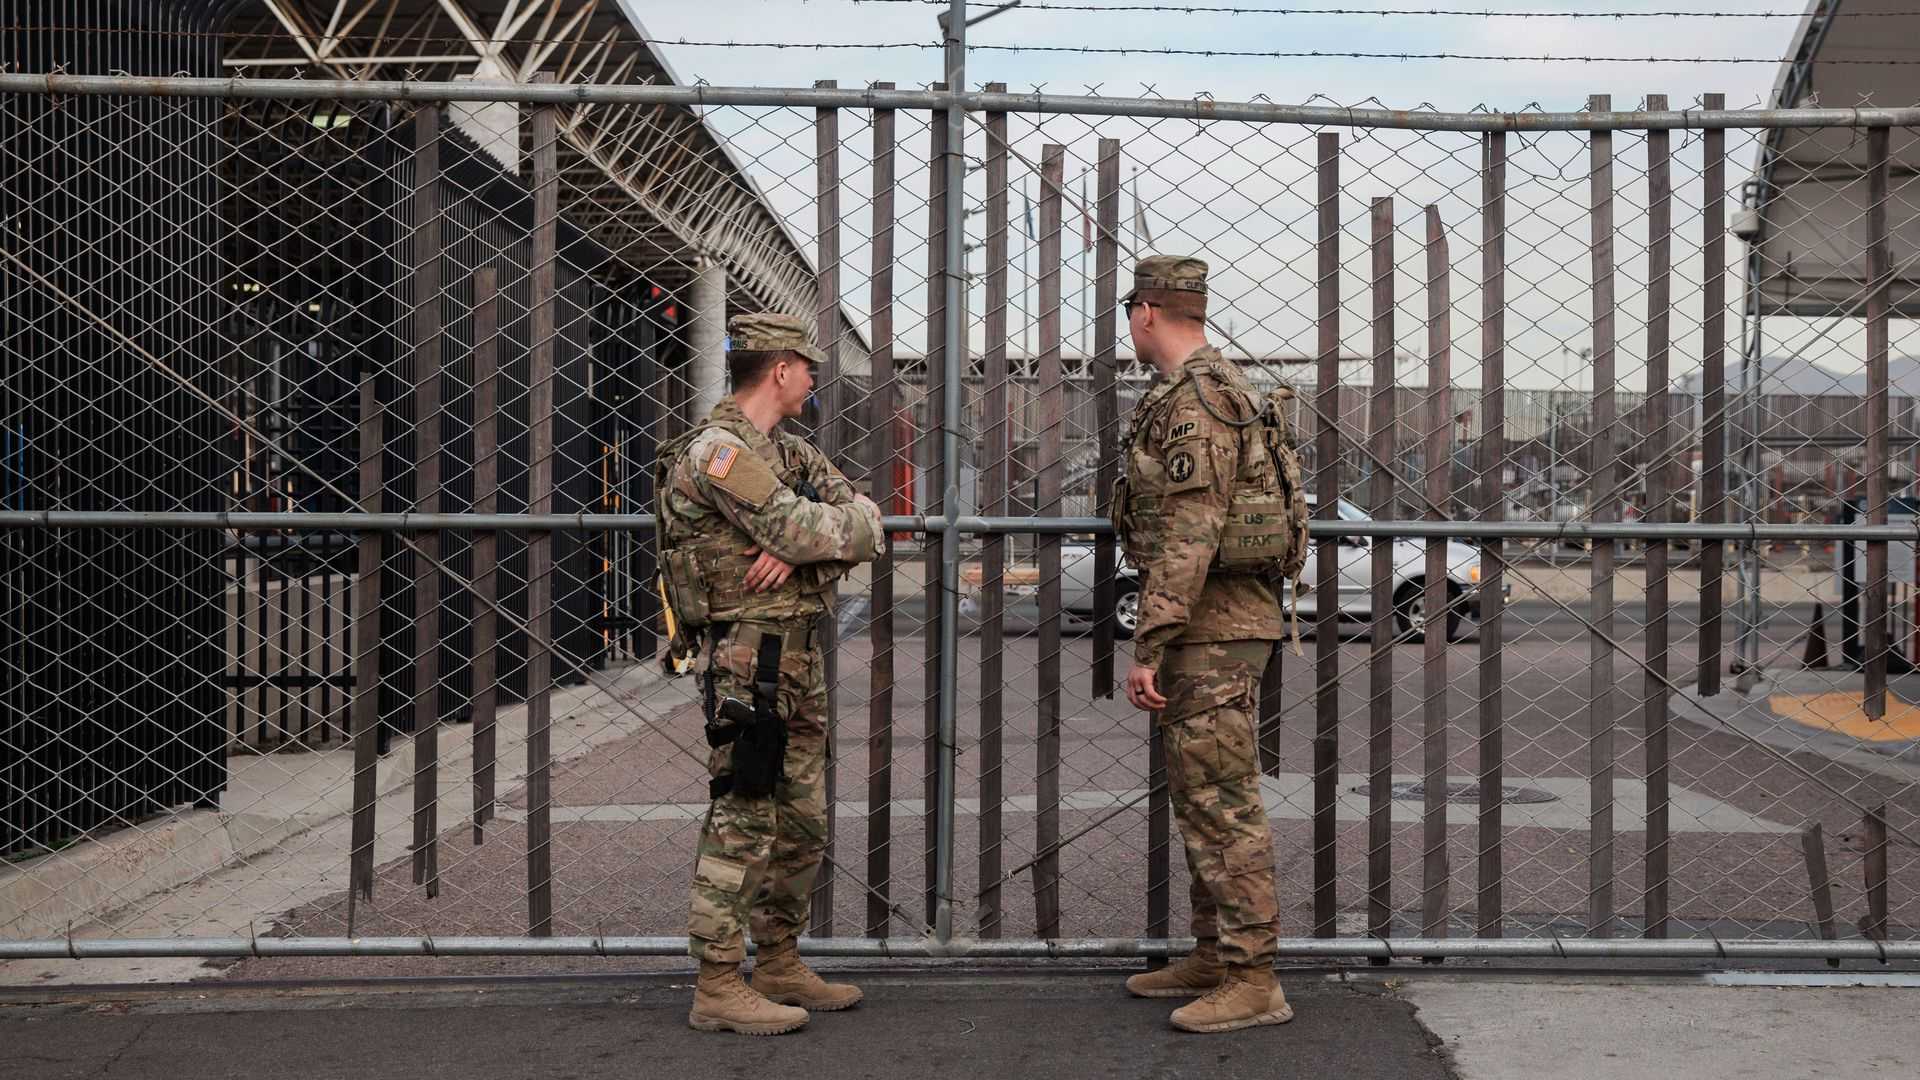 U.S. troops stand at a gate.